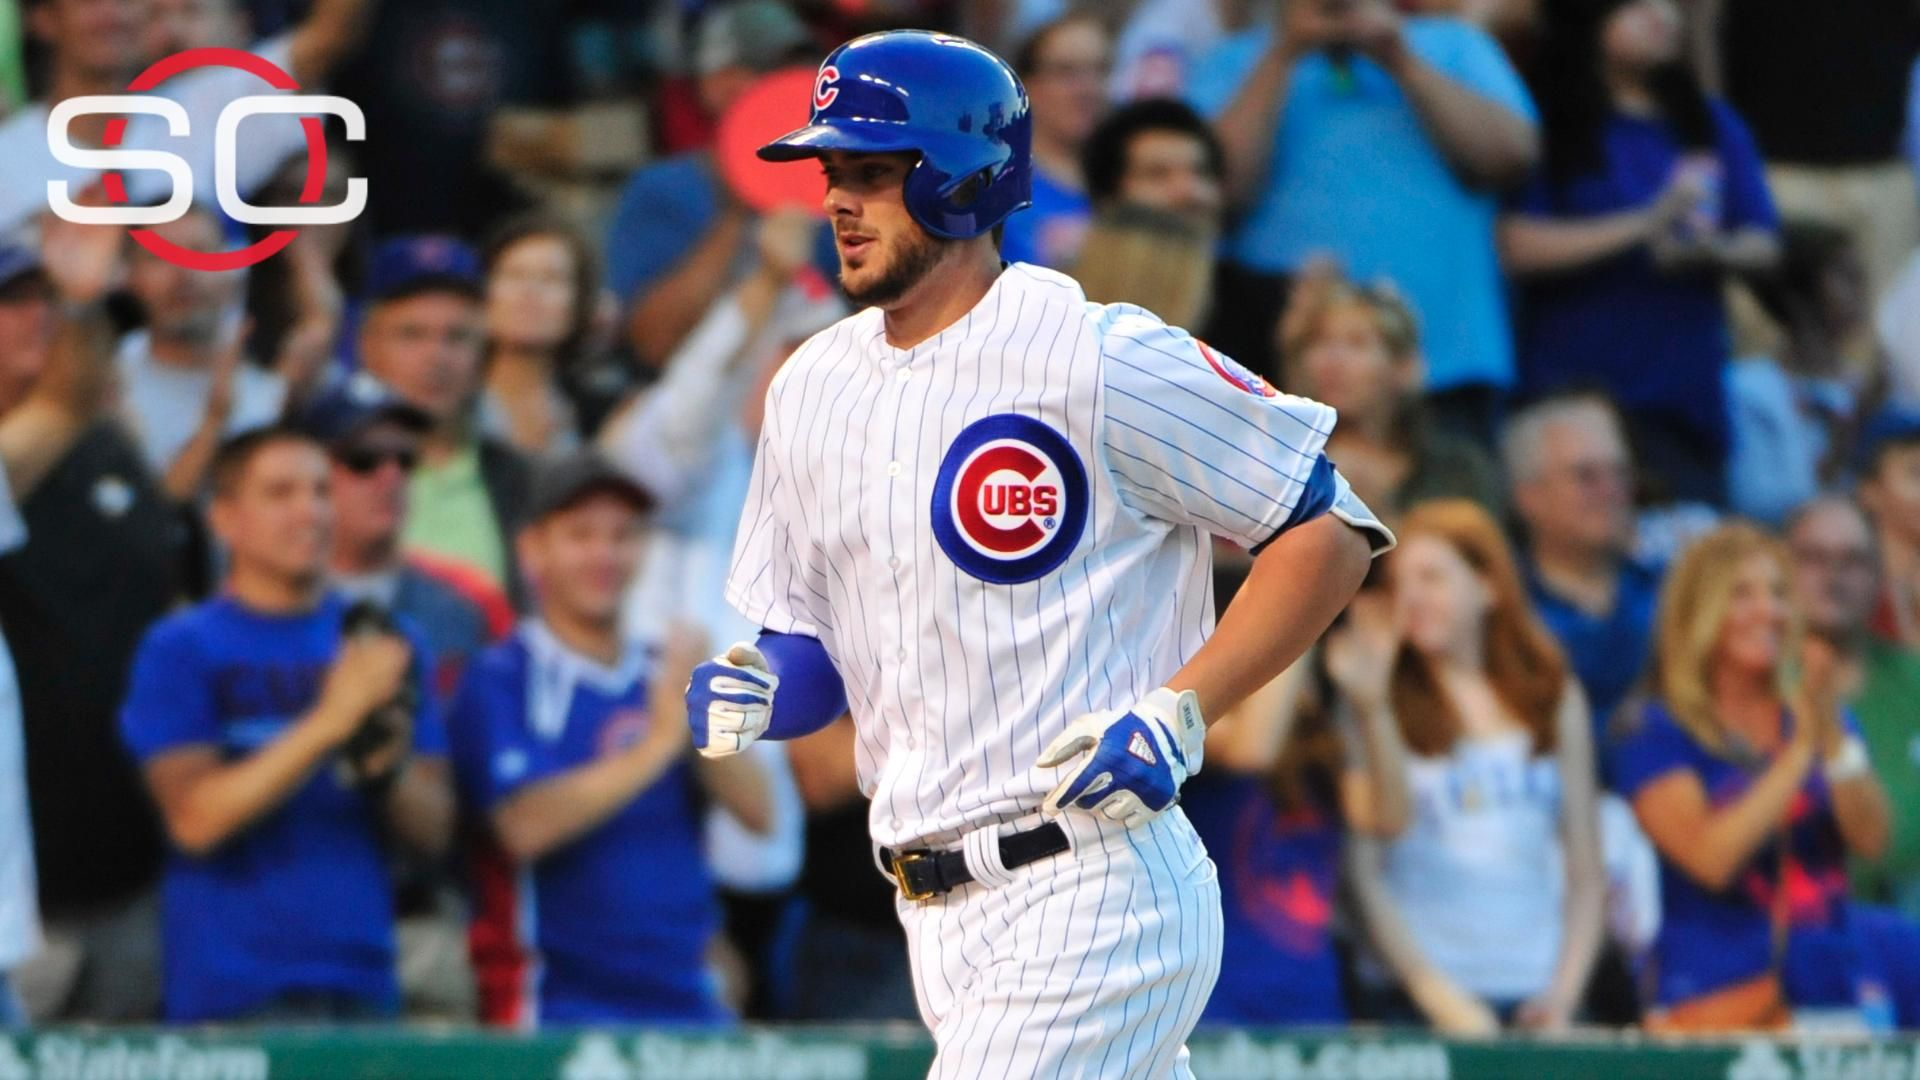 Cubs' Bryant has MLB's top-selling jersey